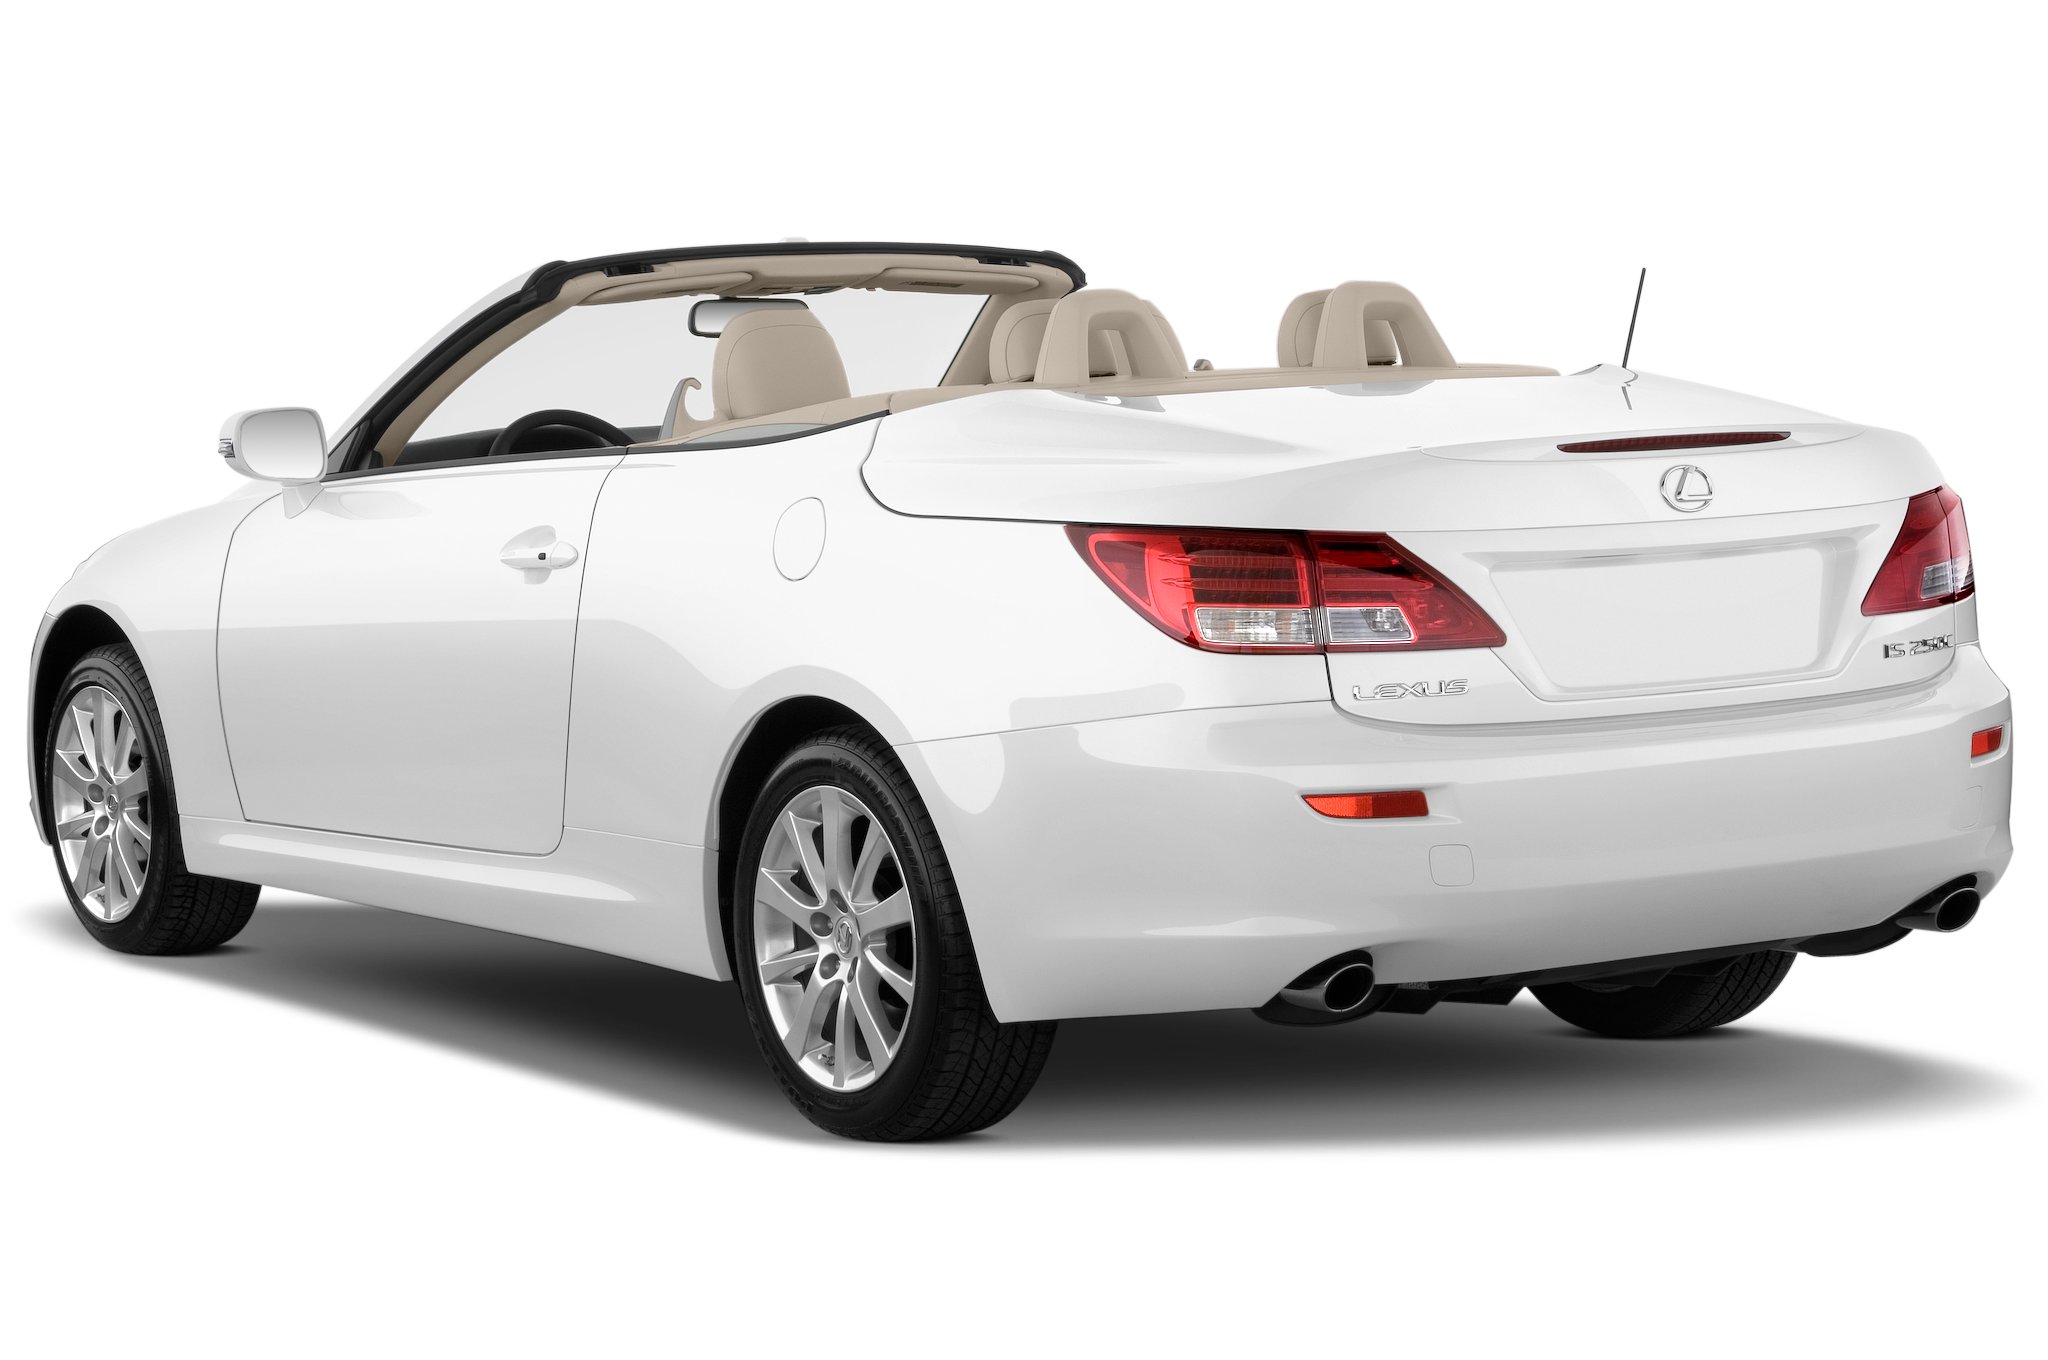 http://st.automobilemag.com/uploads/sites/10/2015/11/2010-lexus-is-250c-convertible-angular-rear.png